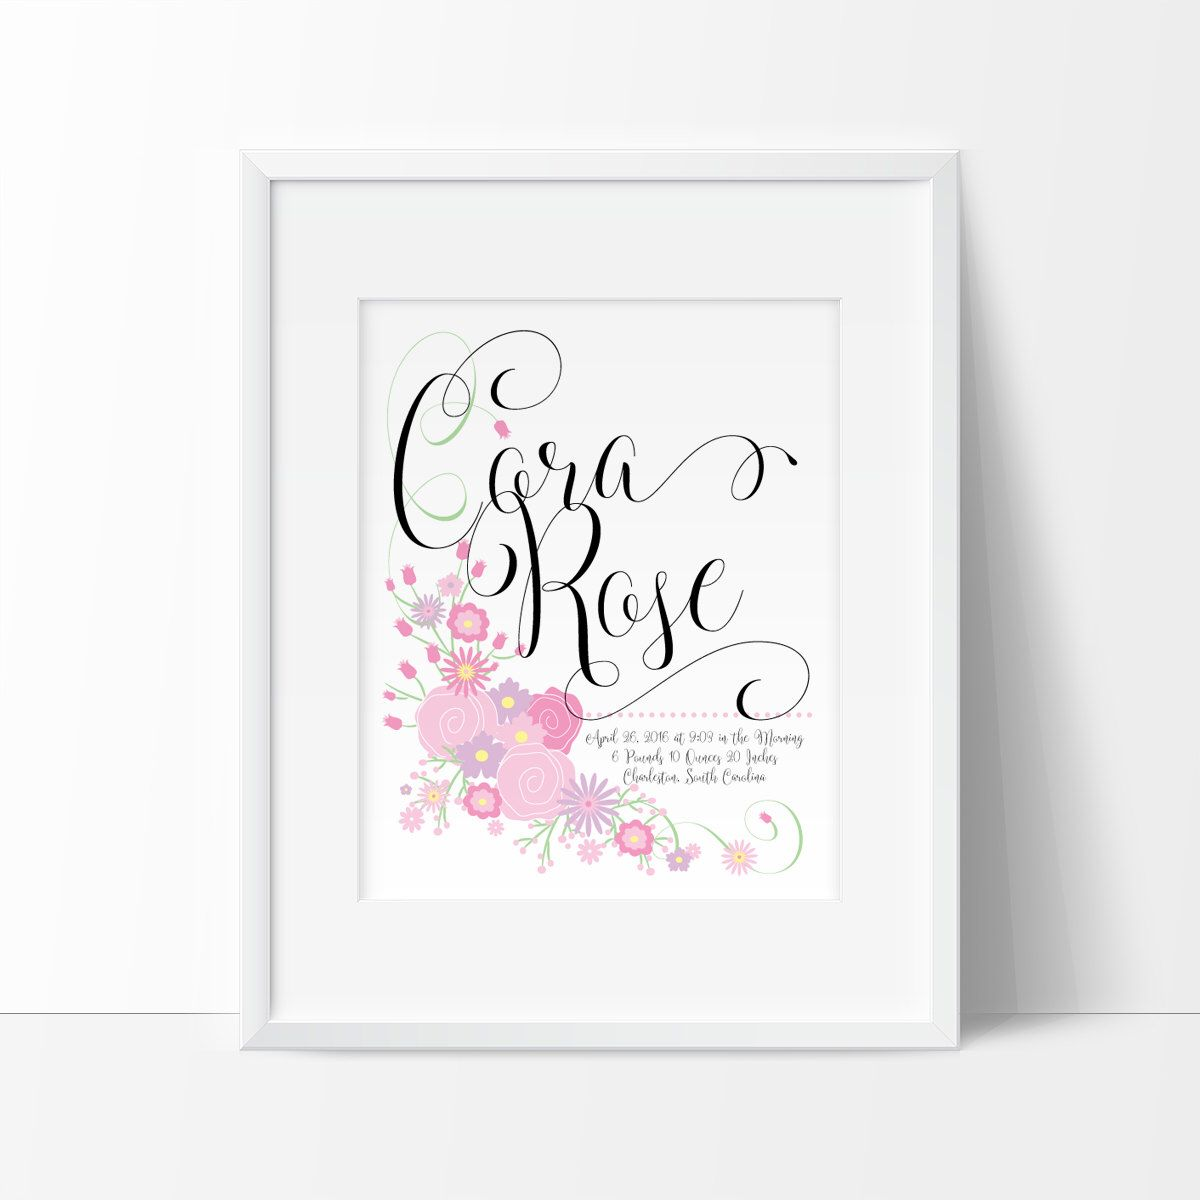 Baby gift birth announcement wall art personalized baby gifts baby gift birth announcement wall art personalized baby gifts digital birth announcement negle Gallery